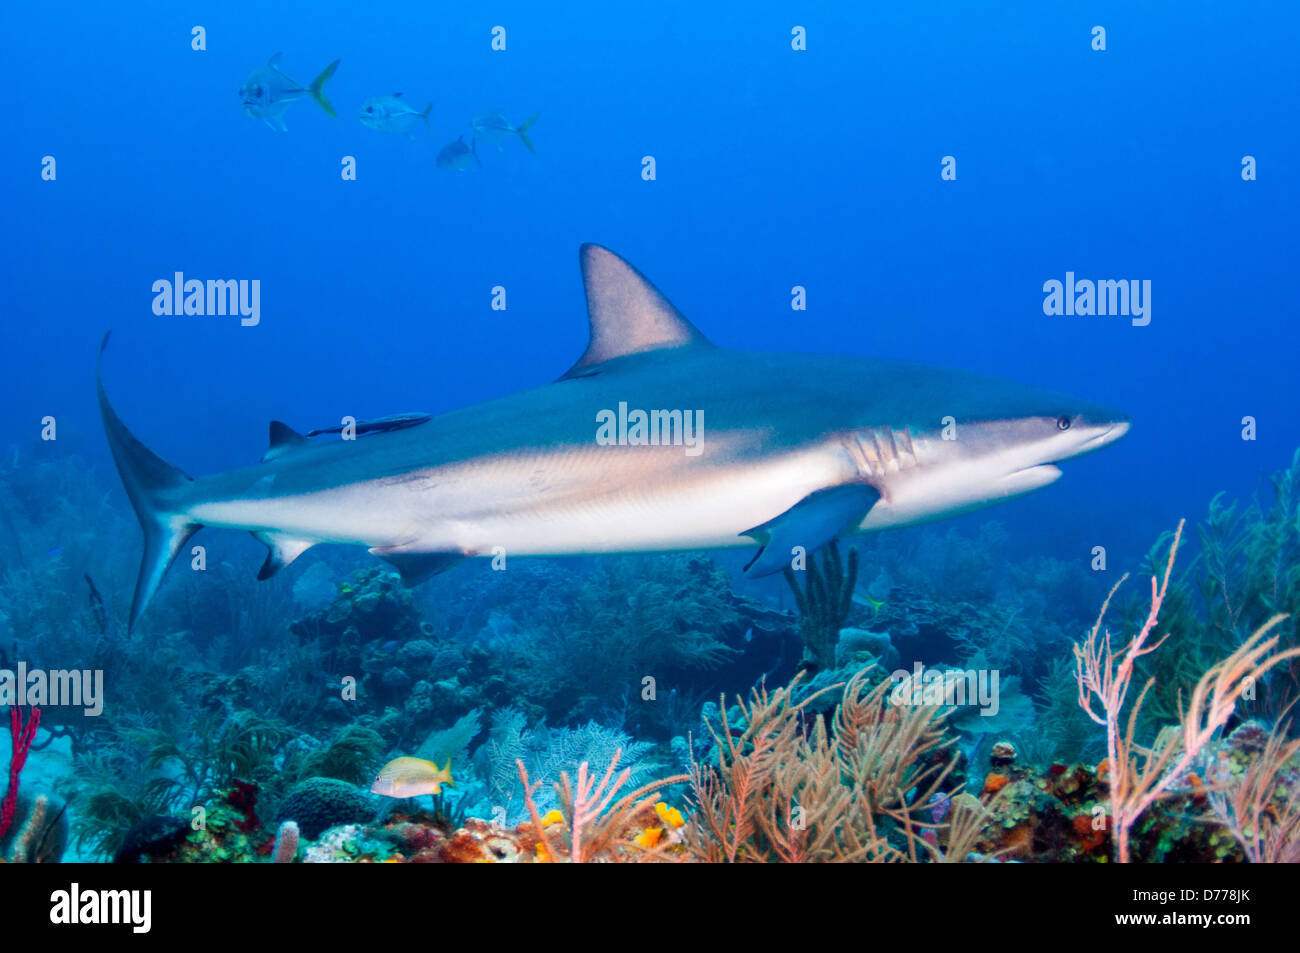 a Reef Shark, Carcharhinus perezi , prowls over a coral reef near the island of Roatan, Honduras. - Stock Image